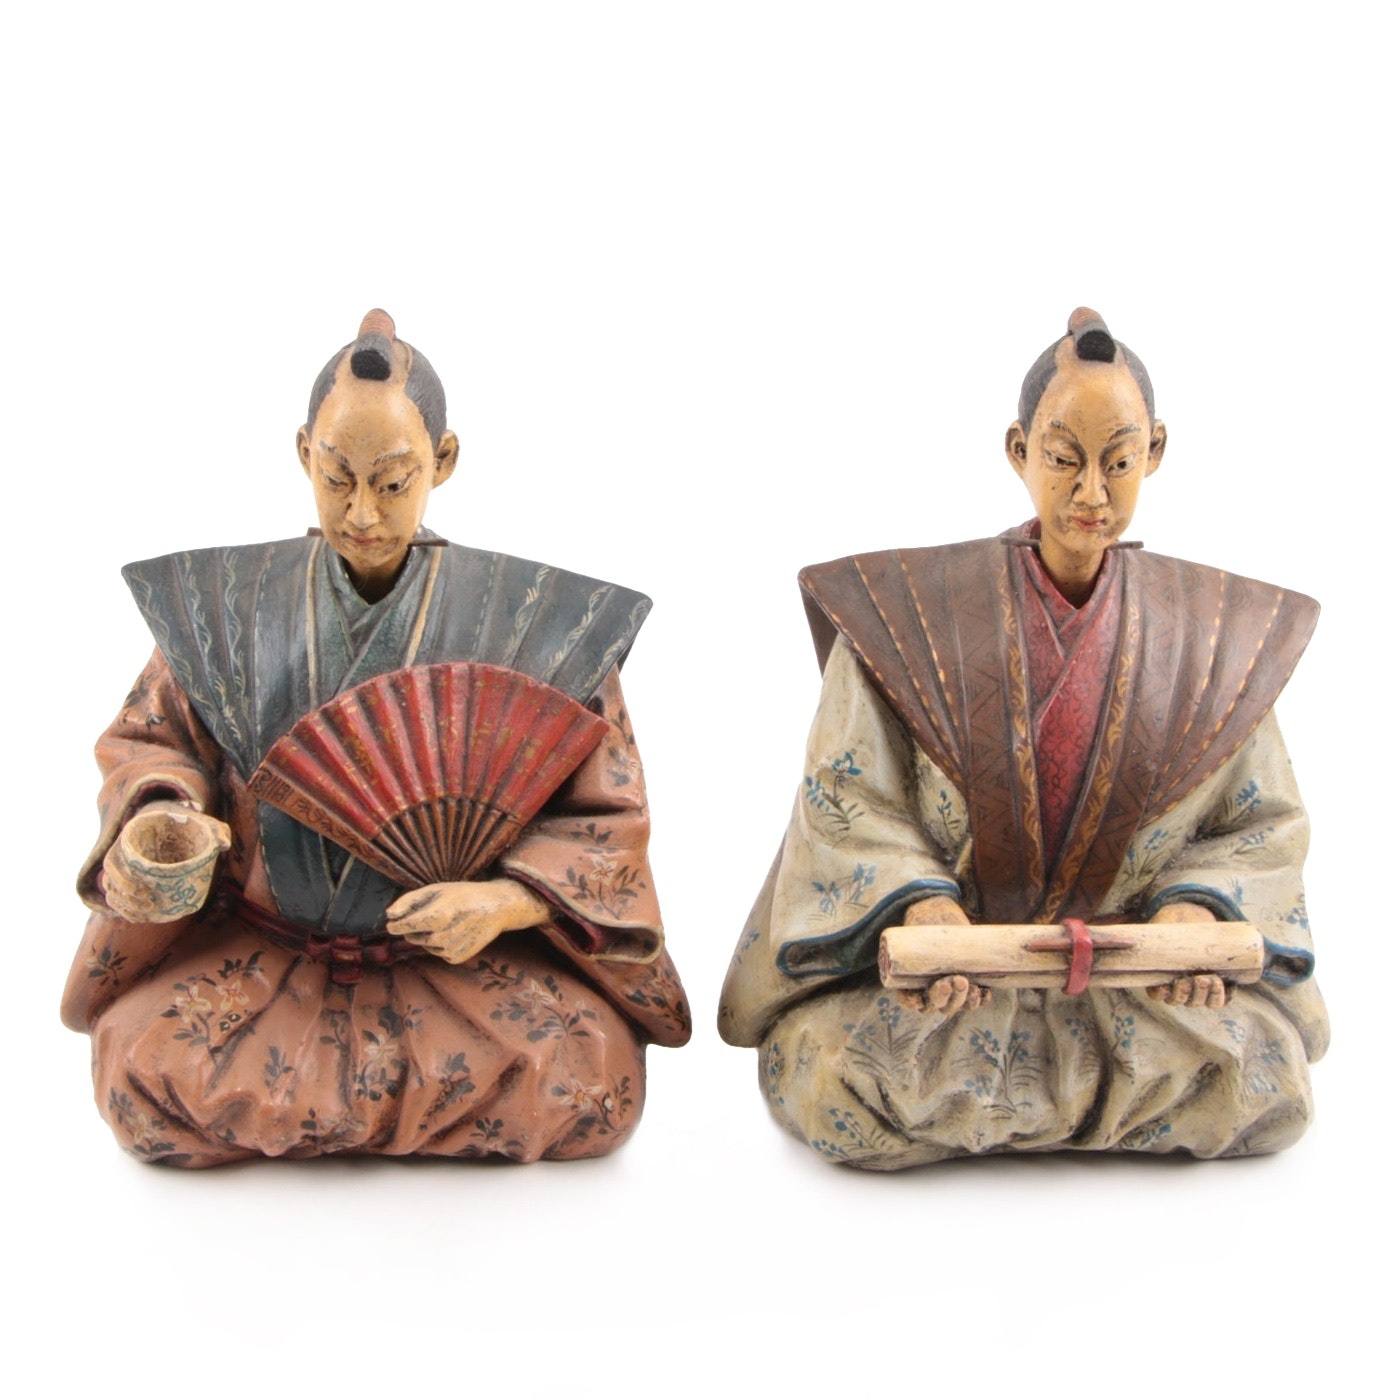 Pair of Italian Ceramic Nodding Japanese Scholar Figures, Mid-19th Century